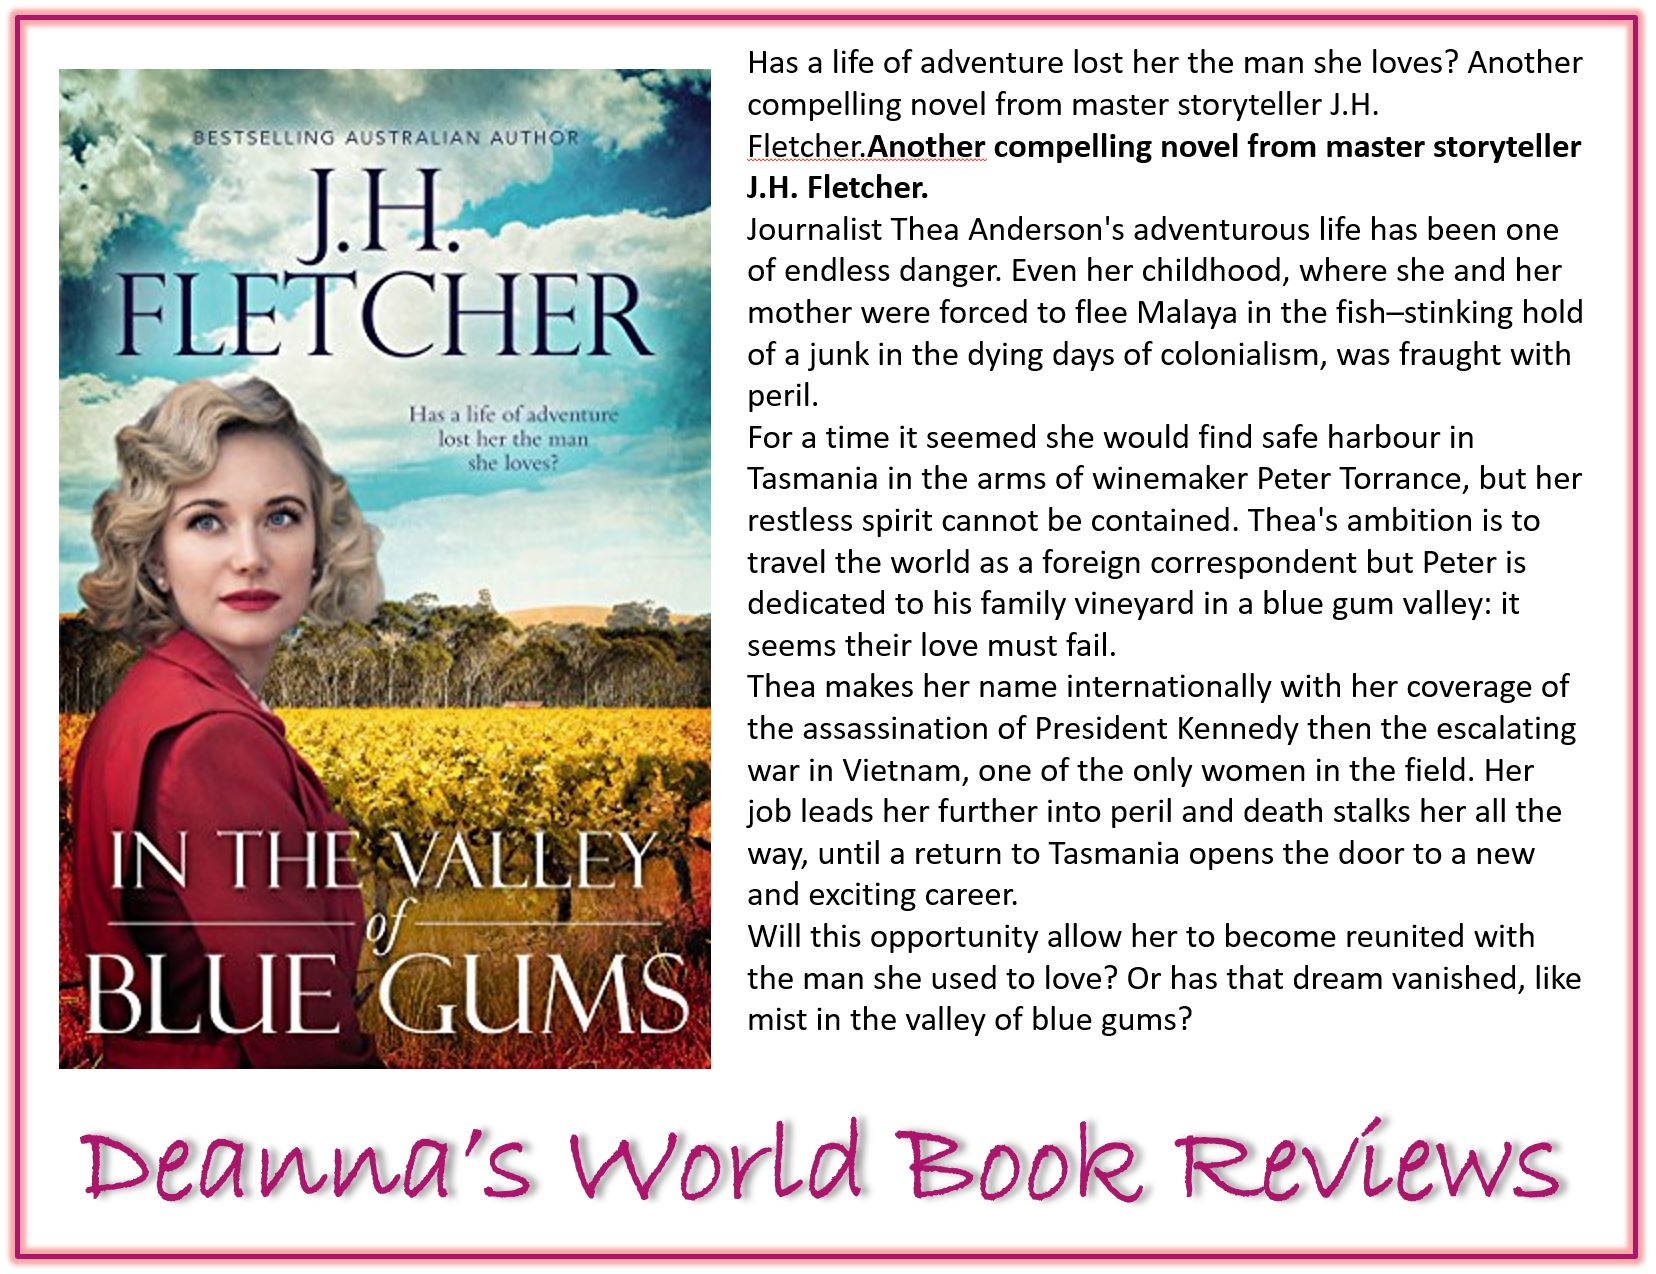 In The Valley of Blue Gums by J H Fletcher blurb